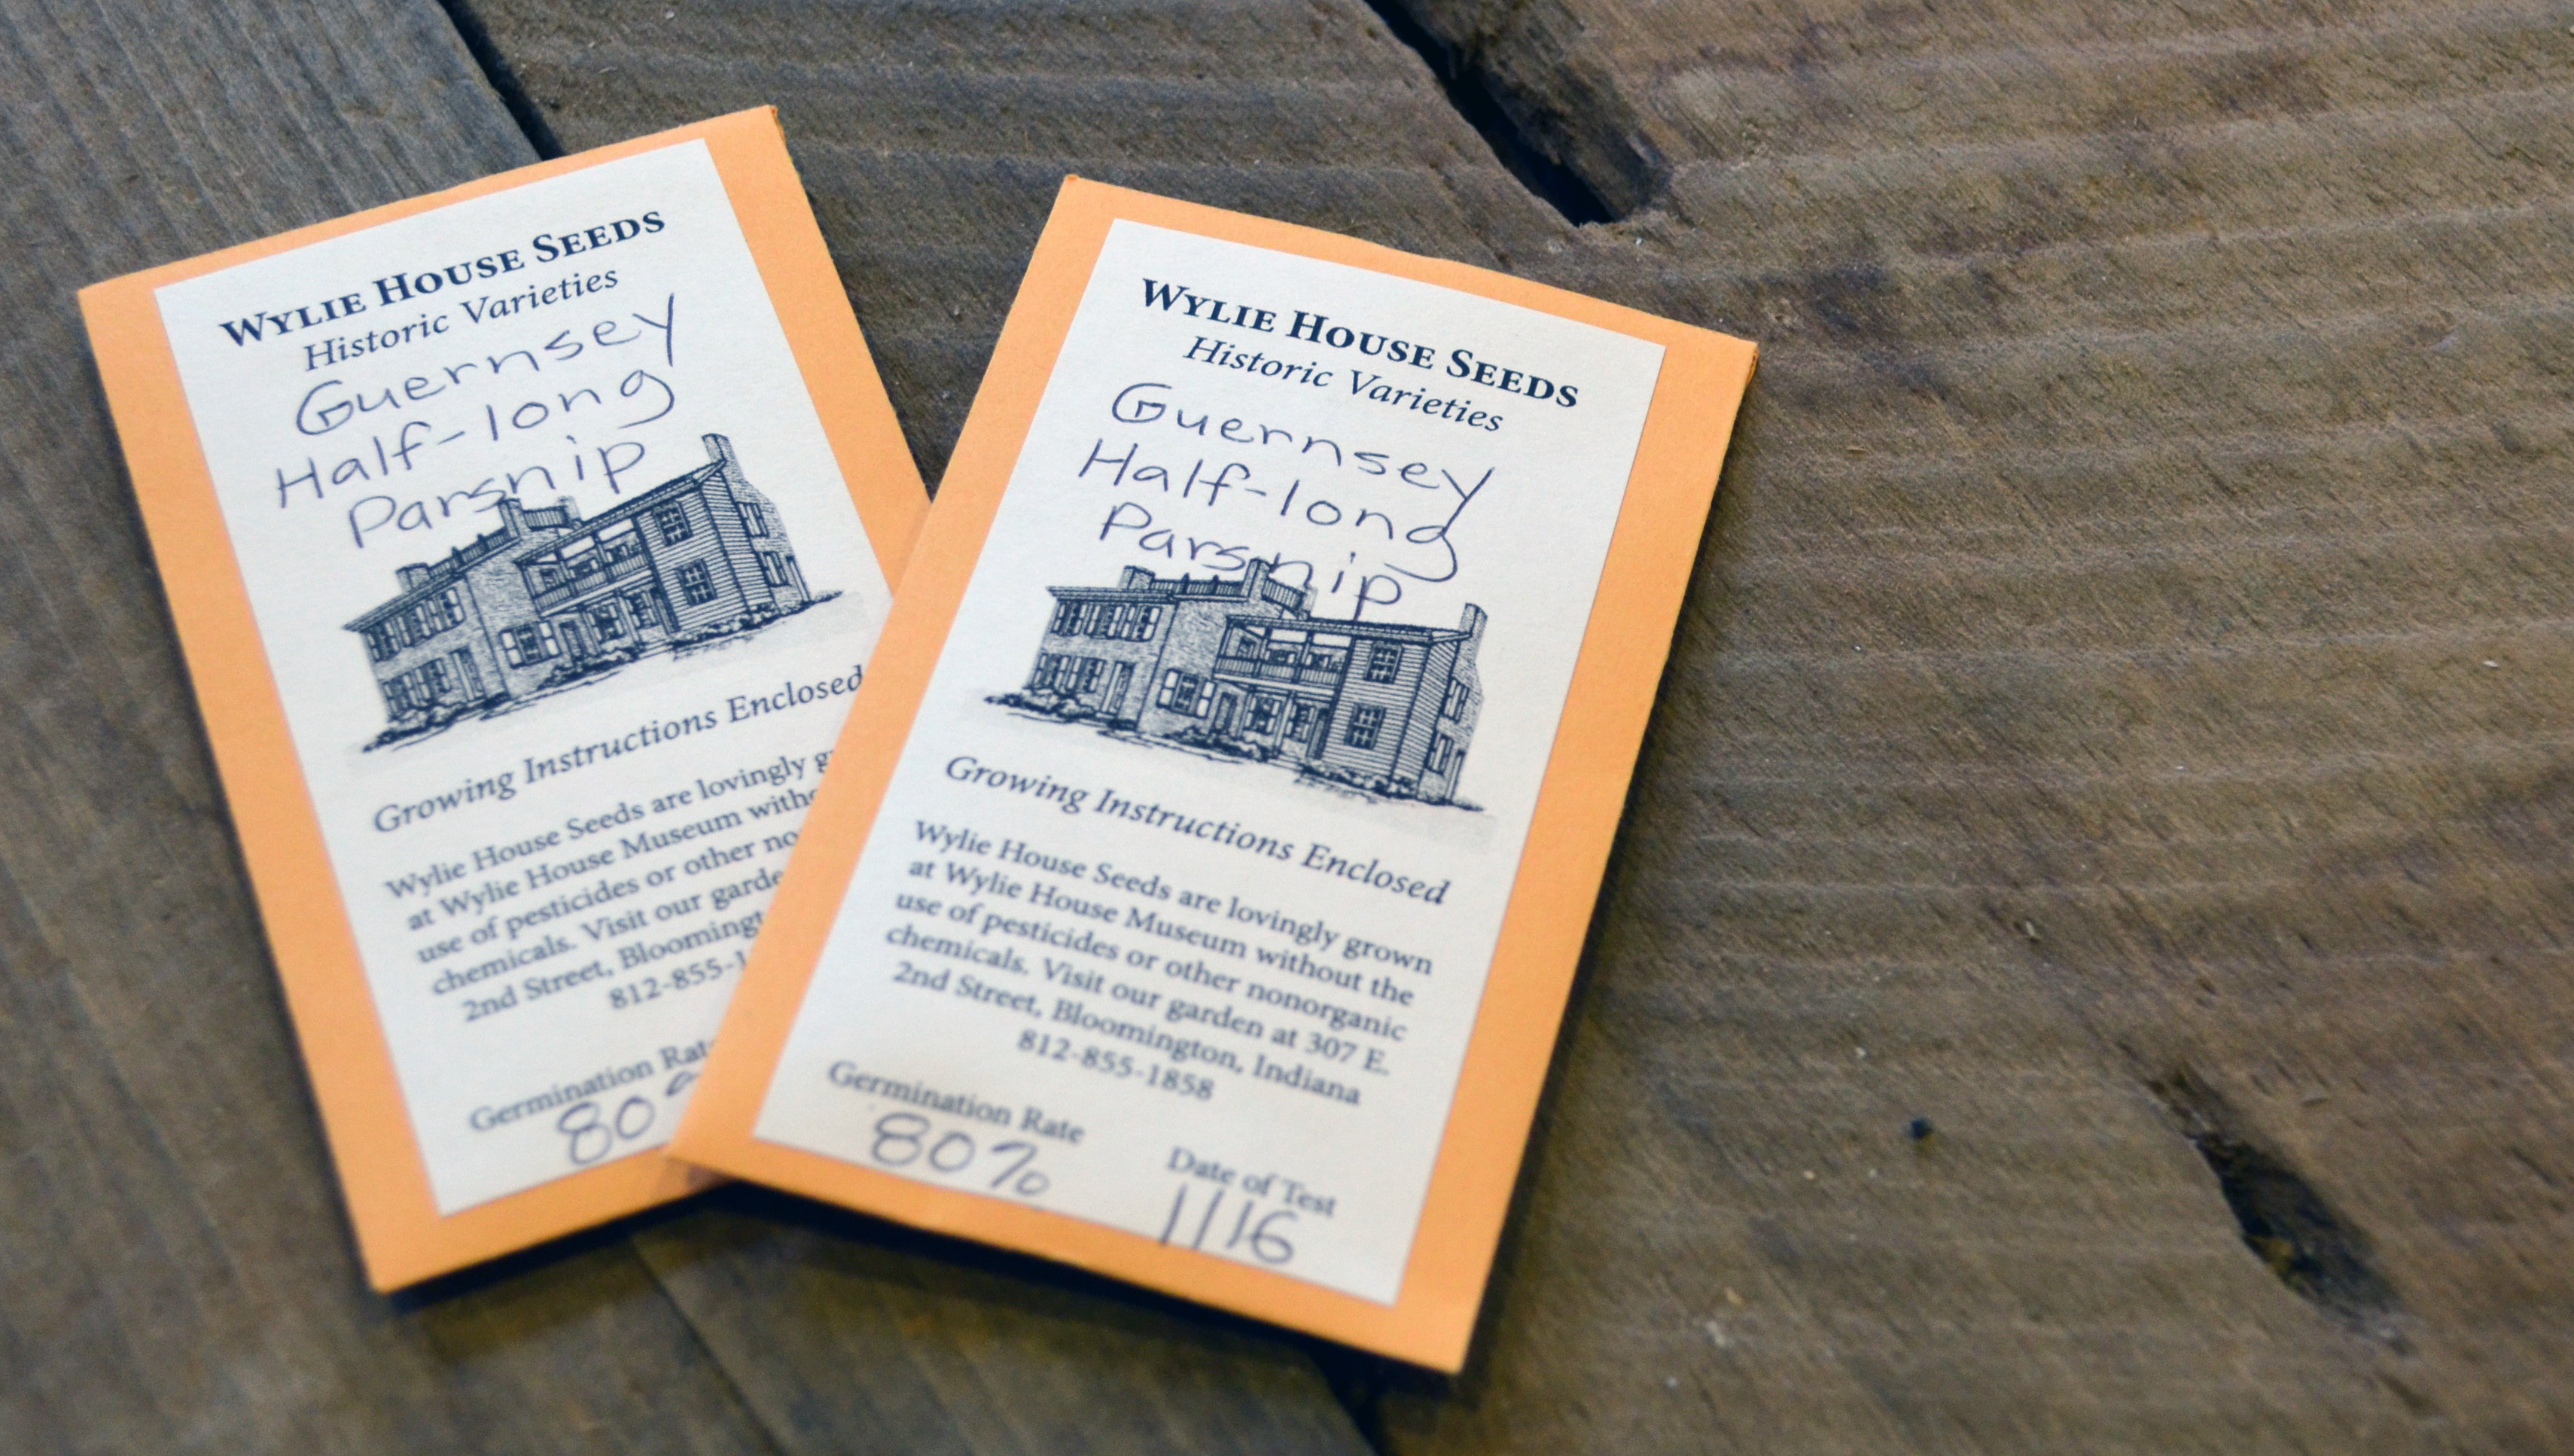 Photo of seed packets offered by Wylie House